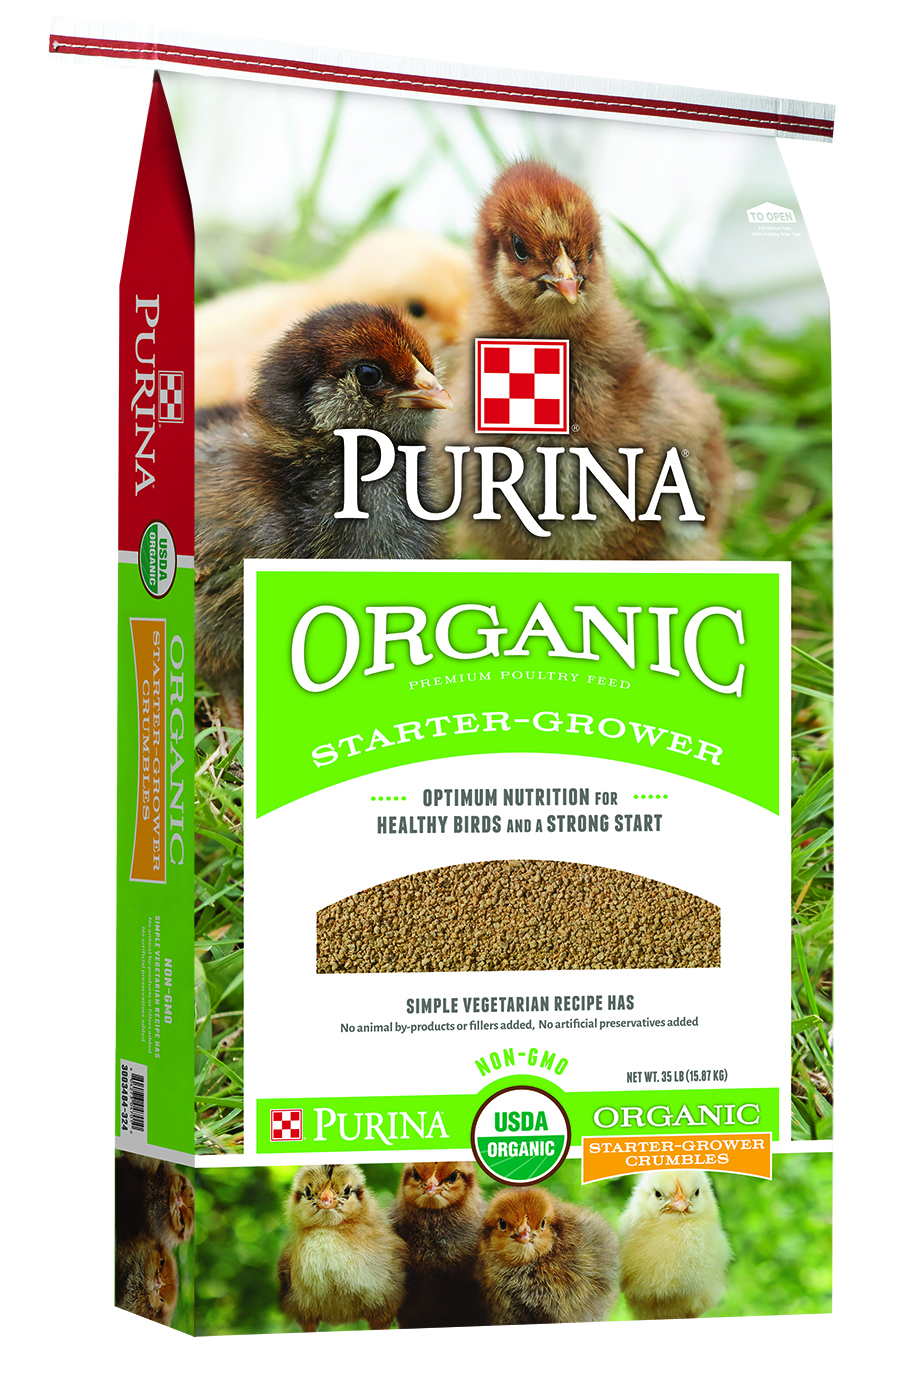 Purina Organic Starter Grower Bag